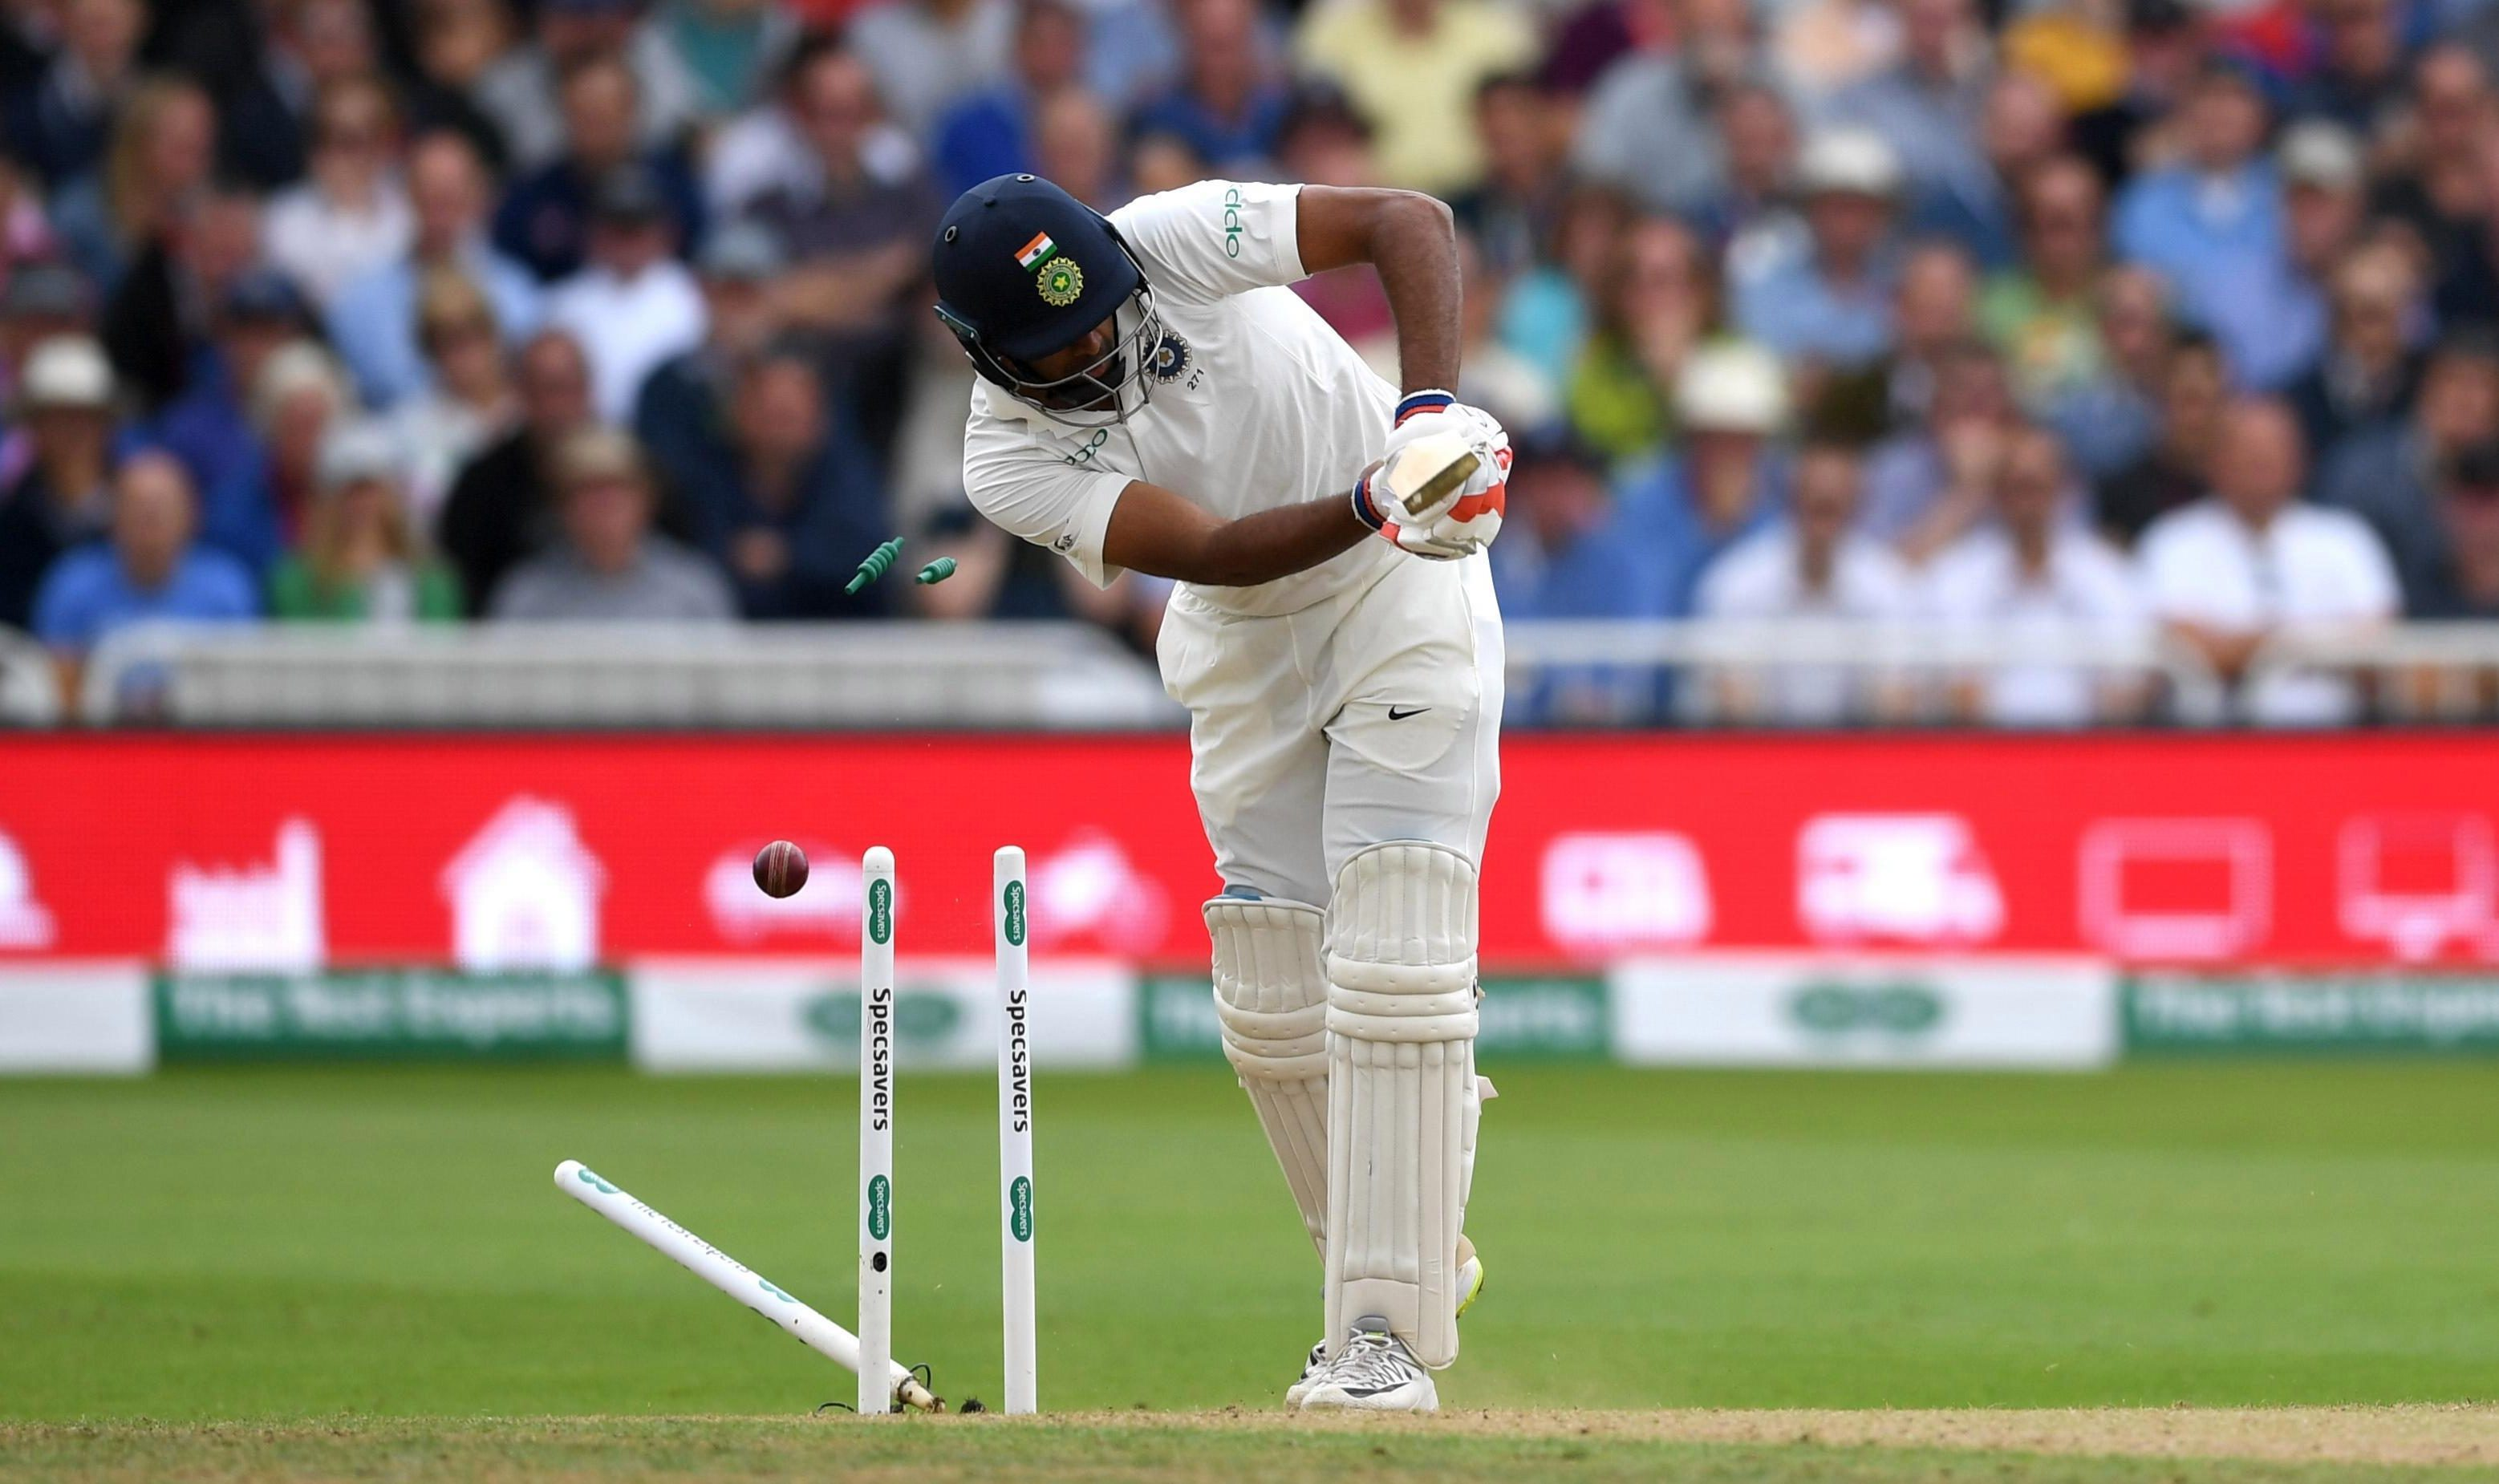 The day had started well as India collapsed from 307-6 overnight to 329 all out